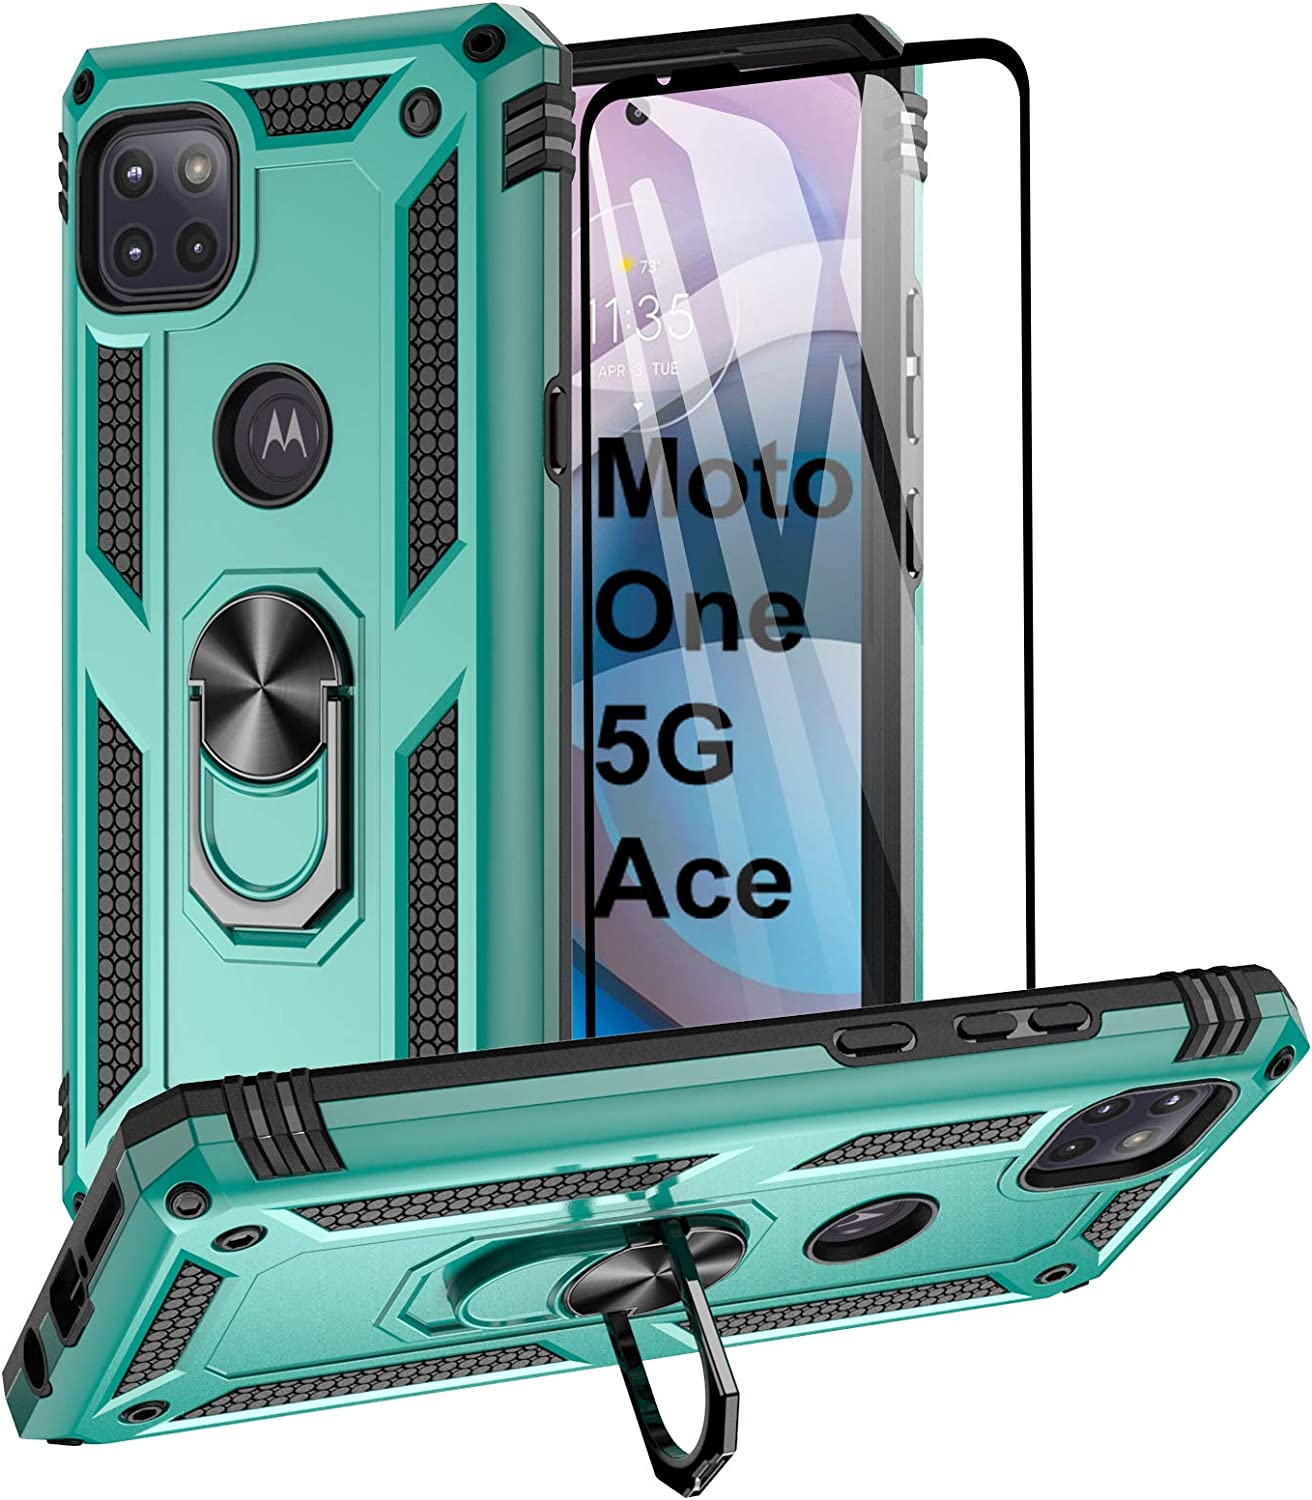 Aliruke Moto One 5G Ace/Moto G 5G Case with Tempered Glass Screen Protector and Grip Ring Kickstand, Military Grade Cover Magnetic Finger Loop Stand Phone Cases for Motorola Moto One 5G Ace, Mint